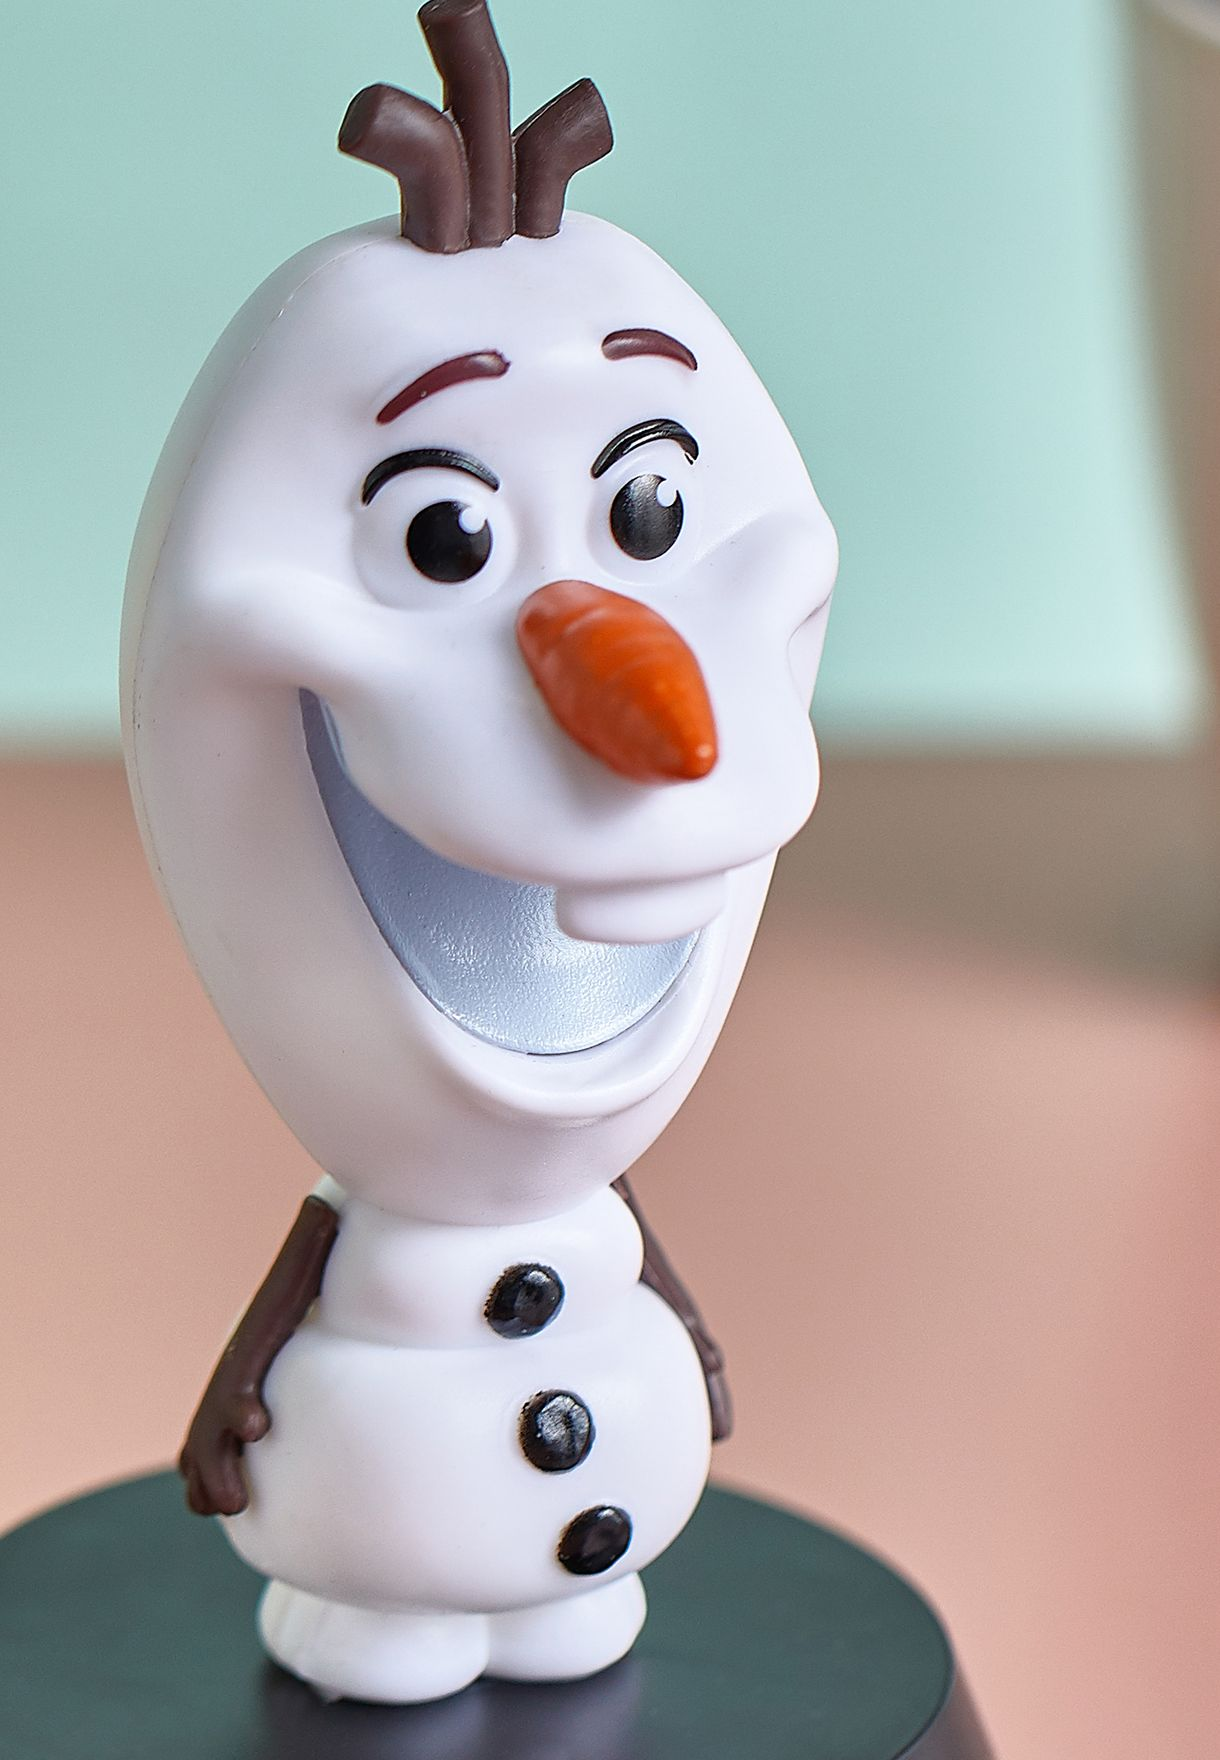 Frozen 2 Olaf Iconic Lamp